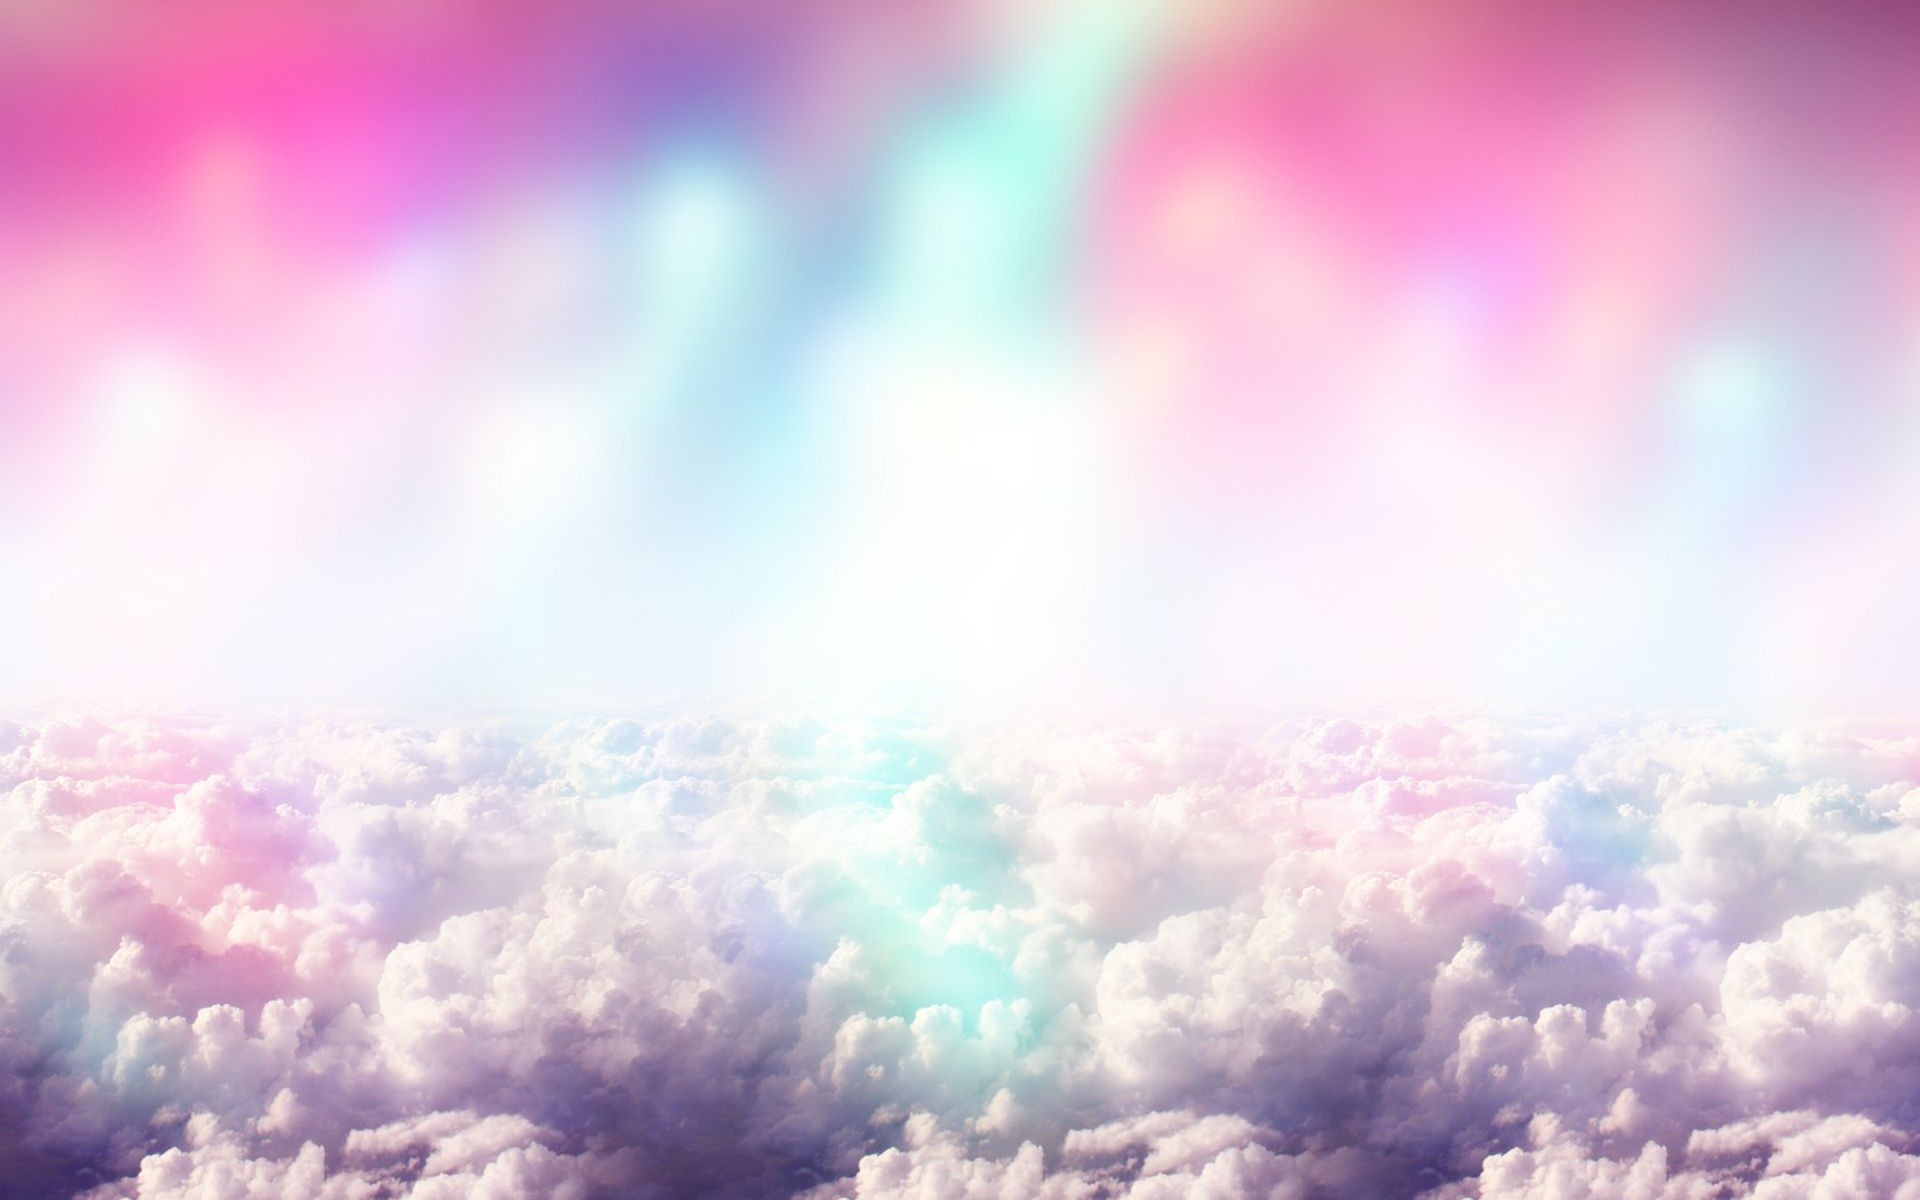 tumblr background clouds 30 hd wallpapers hd images hd